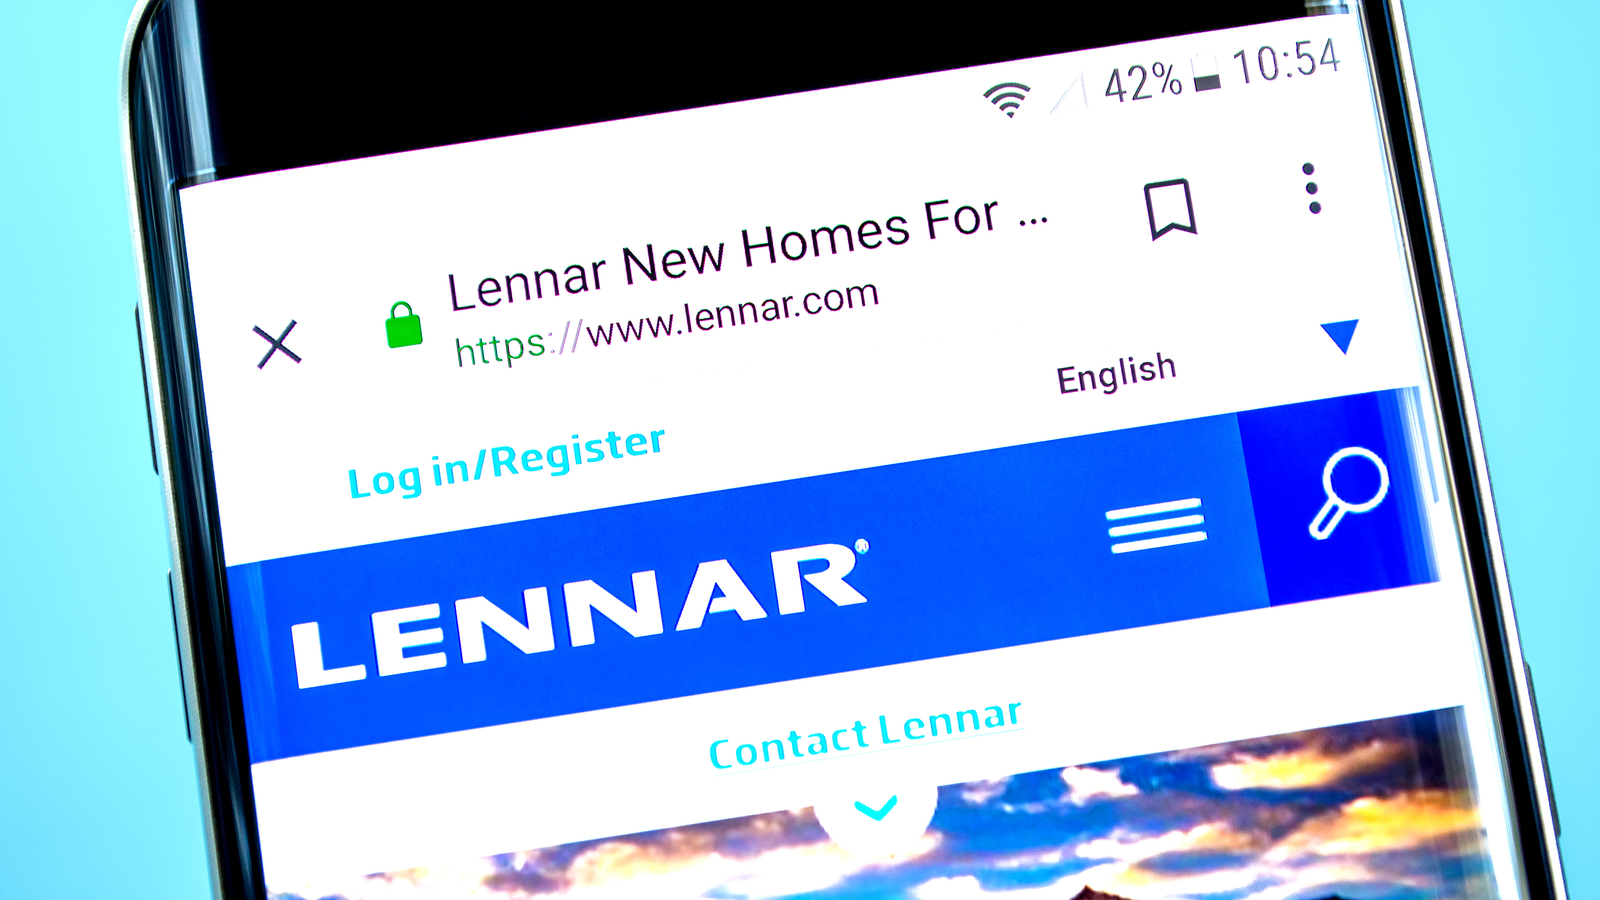 Lennar Corporation Earnings: LEN Stock Jumps 2% on Q4 Beat ...